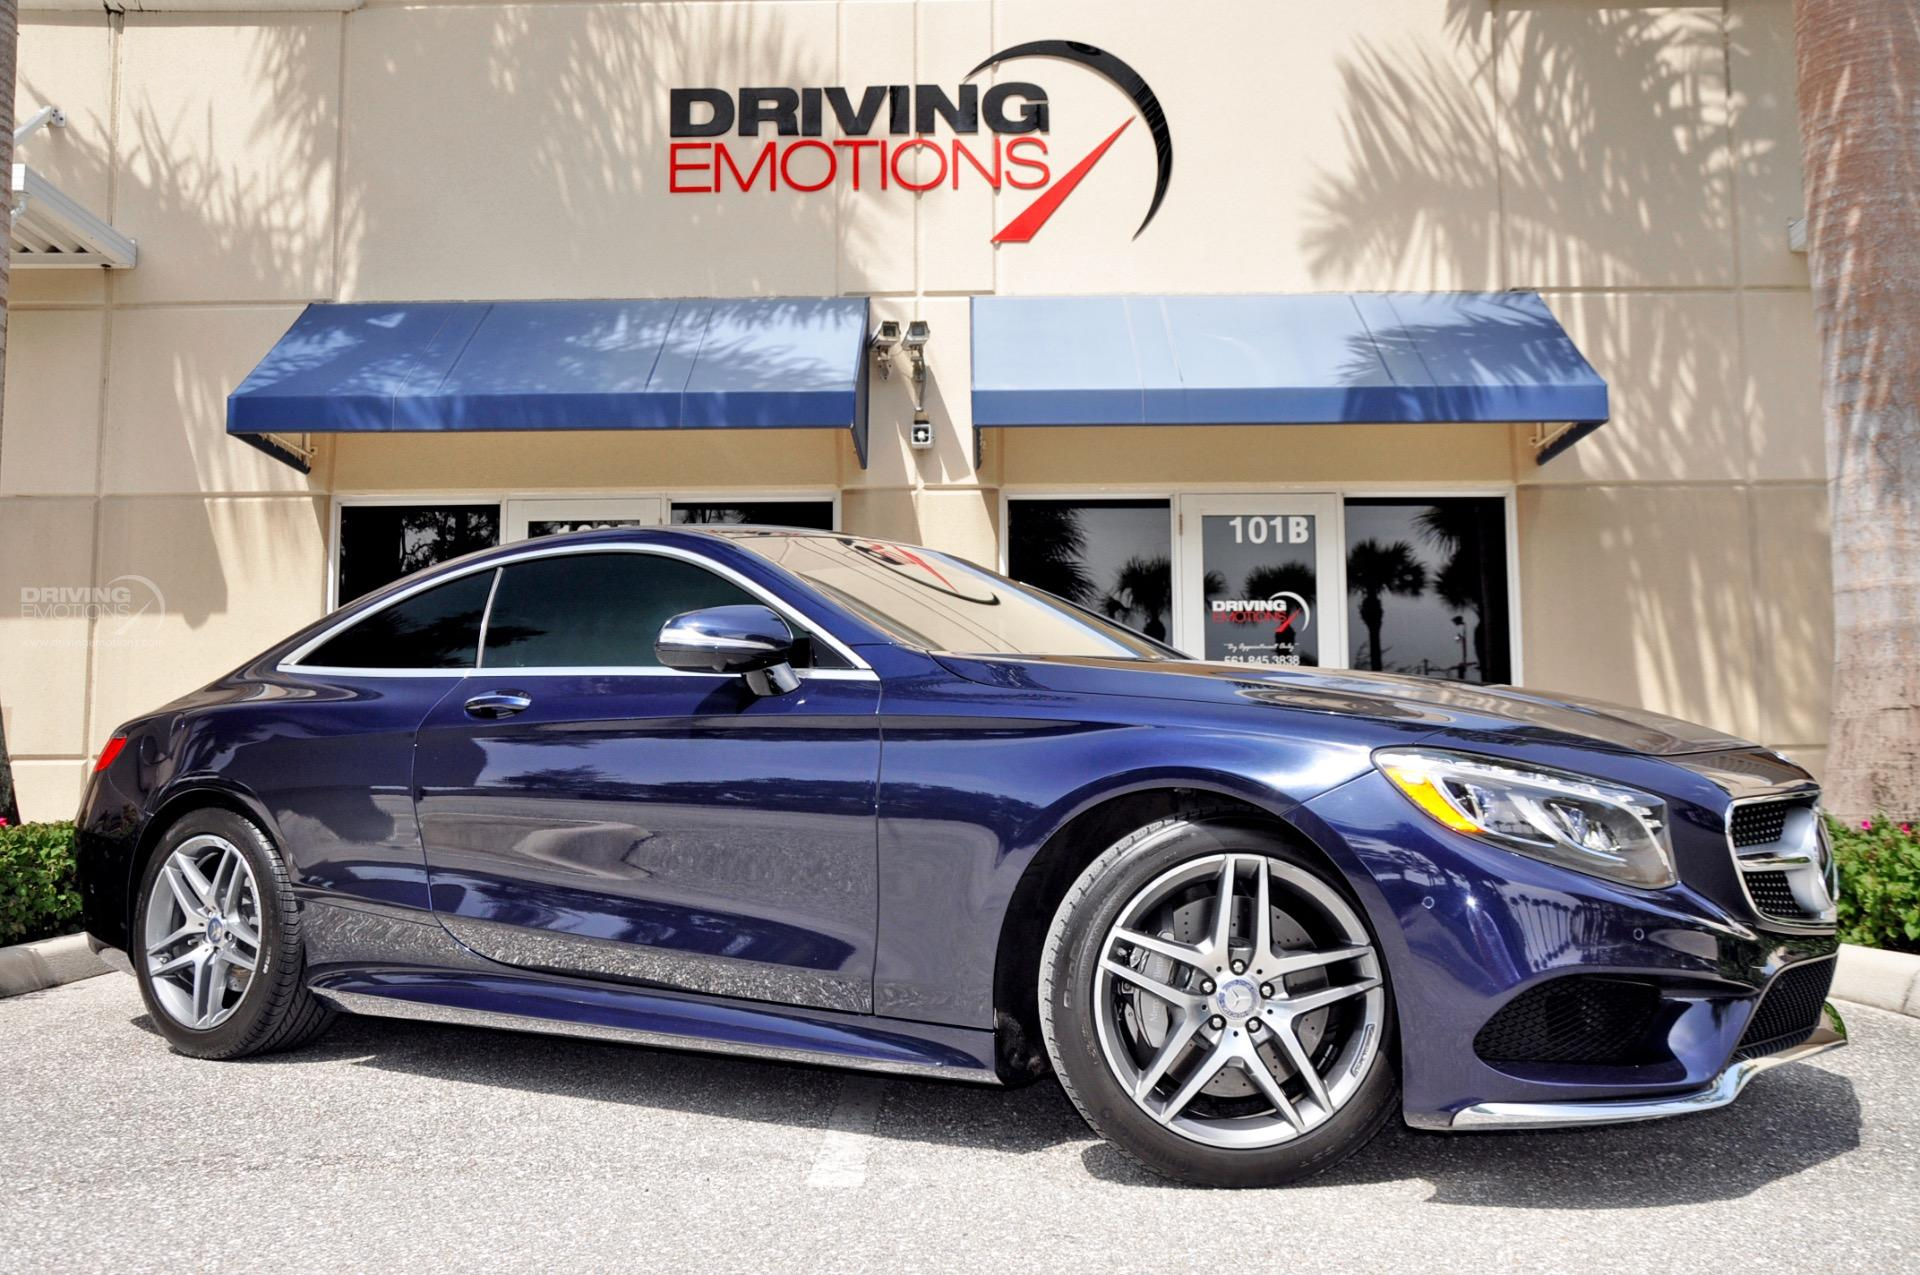 2015 Mercedes Benz S550 4MATIC Coupe S550 4MATIC Stock 5899 for